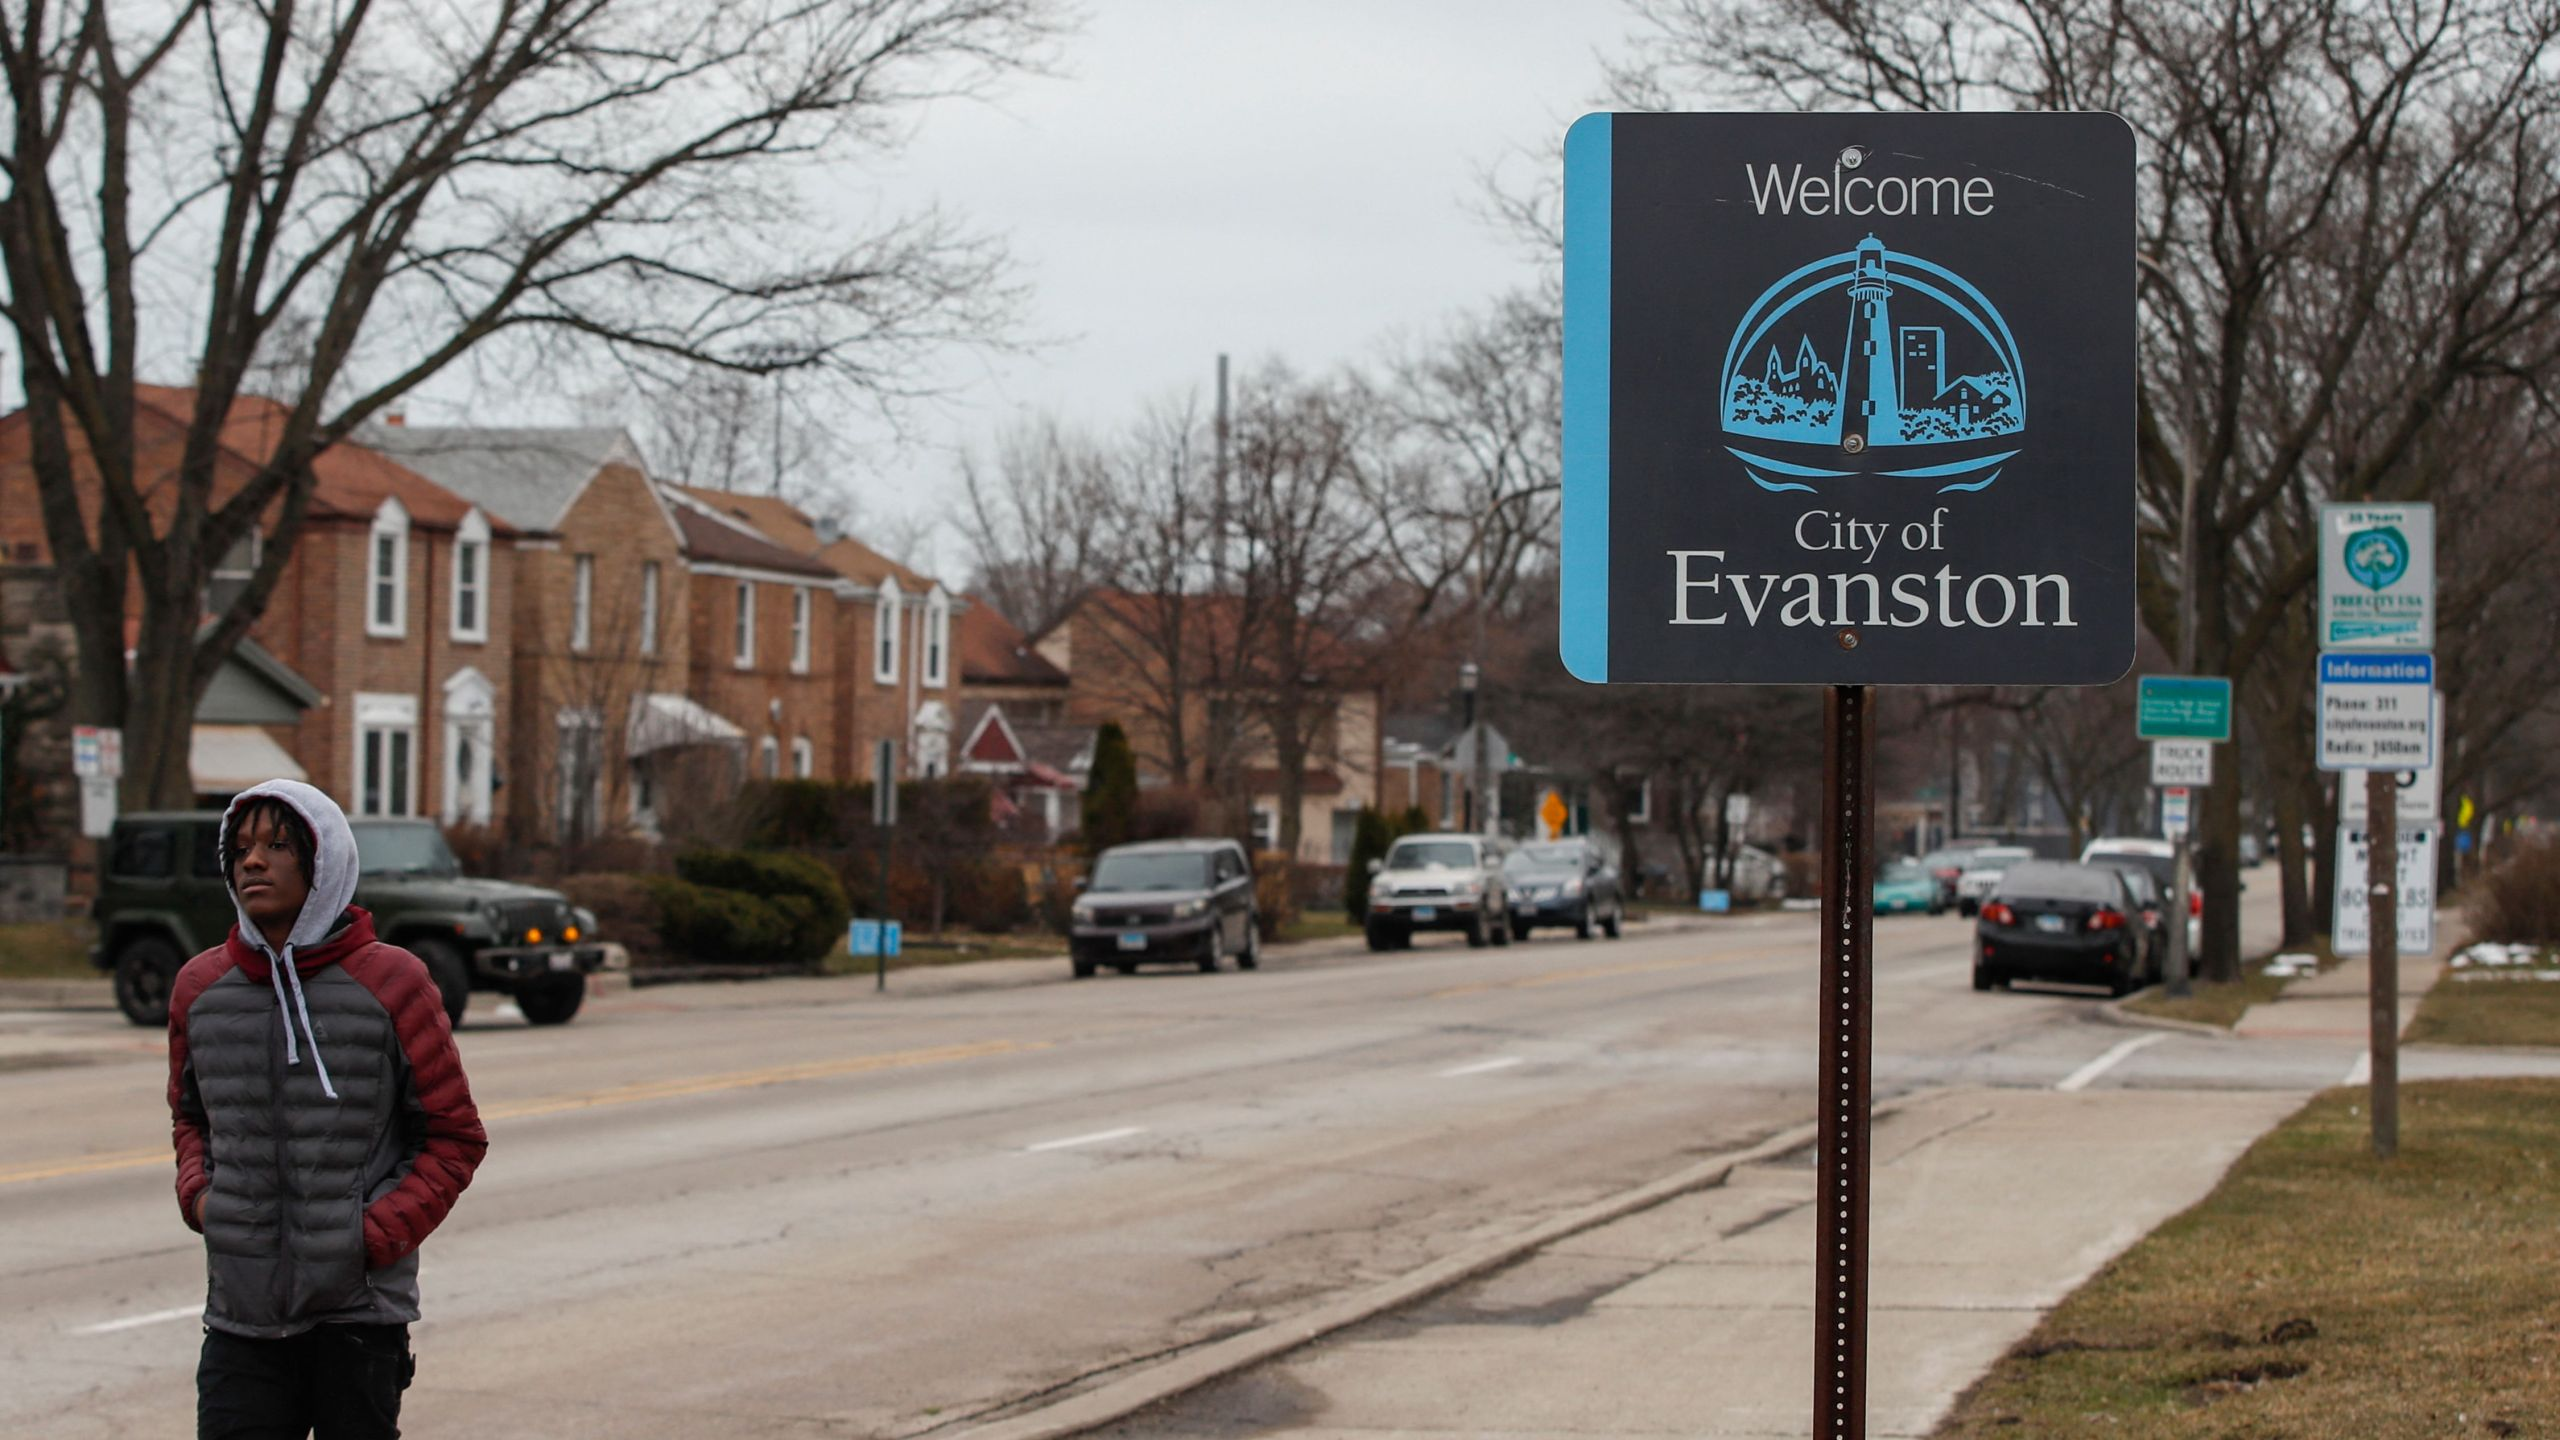 A man walks by a sign welcoming people to the city of in Evanston, Illinois, on March 16, 2021. (Kamil Krzaczynski /AFP / Getty Images)